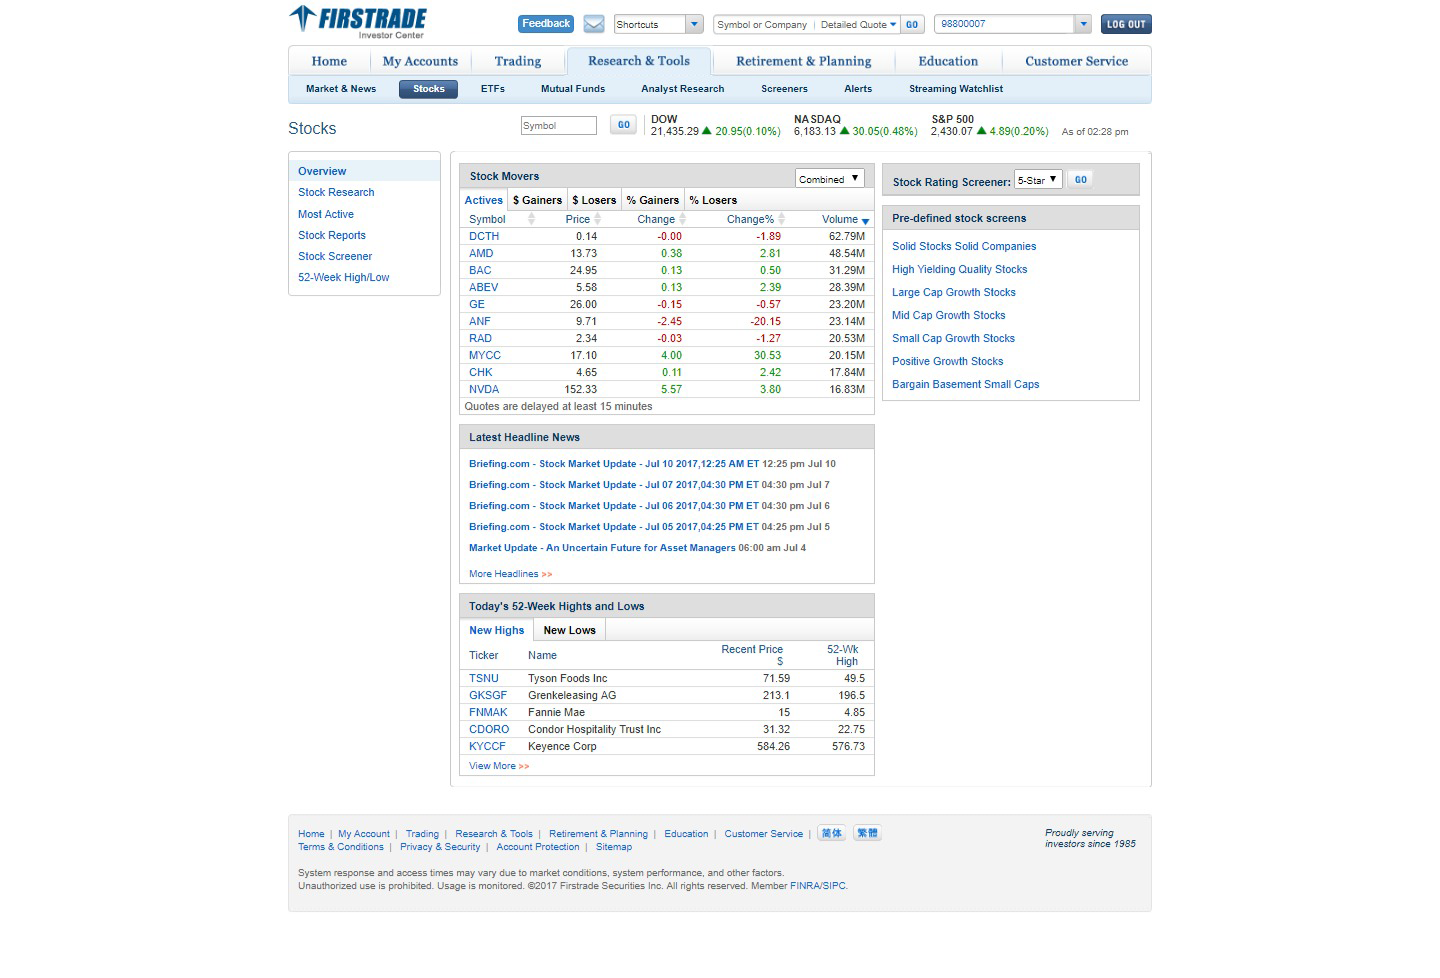 Click on the Stocks link to bring up an overview of equity market data and top stories.